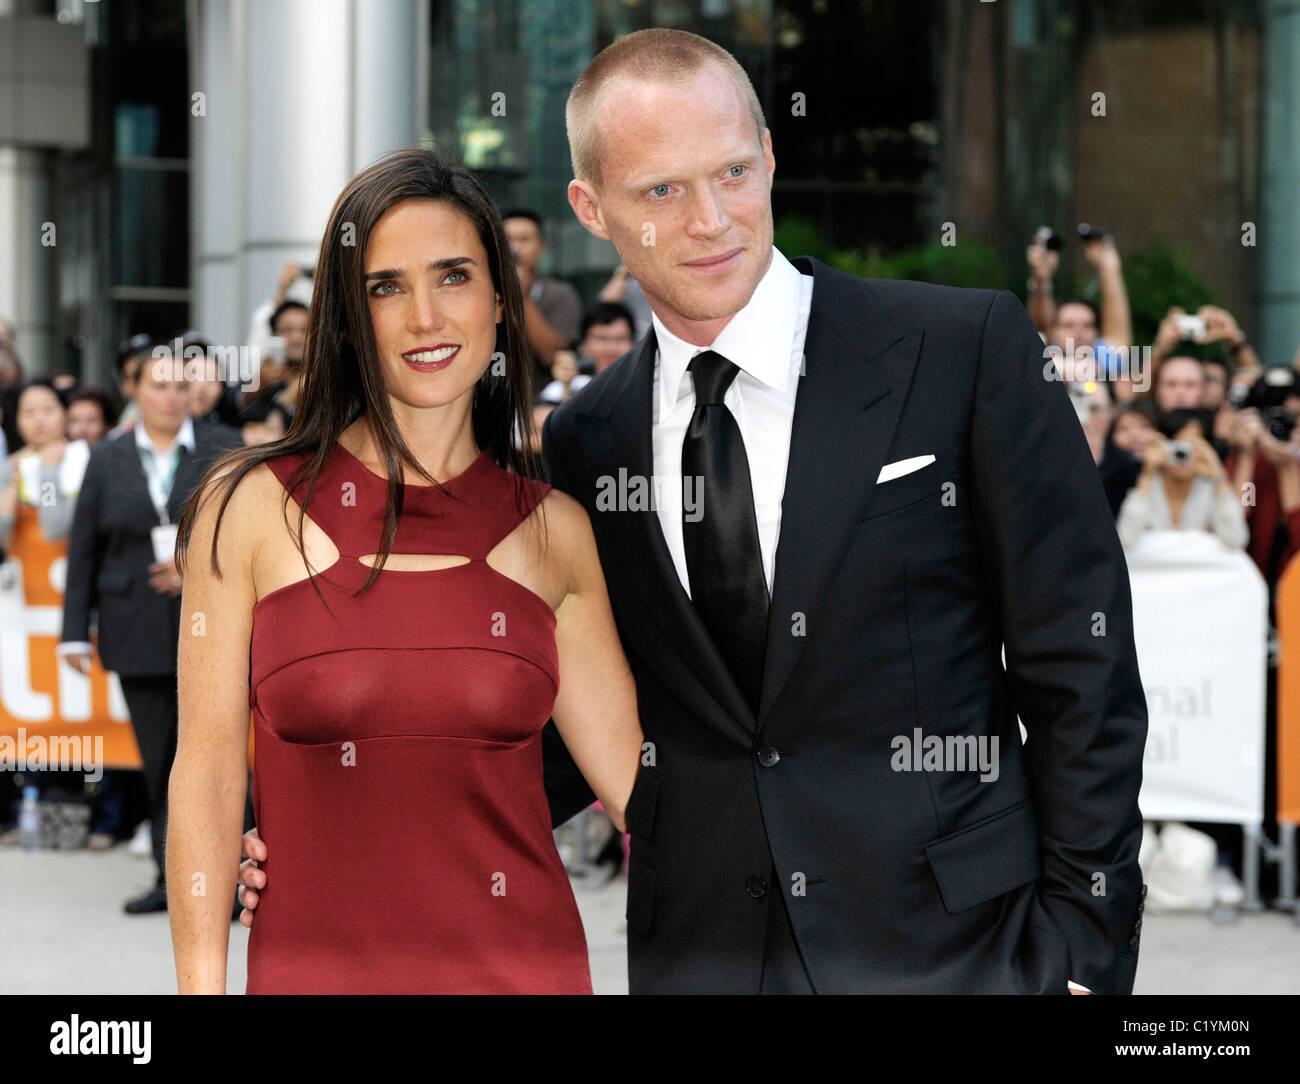 actress jennifer connelly and her husband paul bettany arriving at stock photo 35643797 alamy. Black Bedroom Furniture Sets. Home Design Ideas